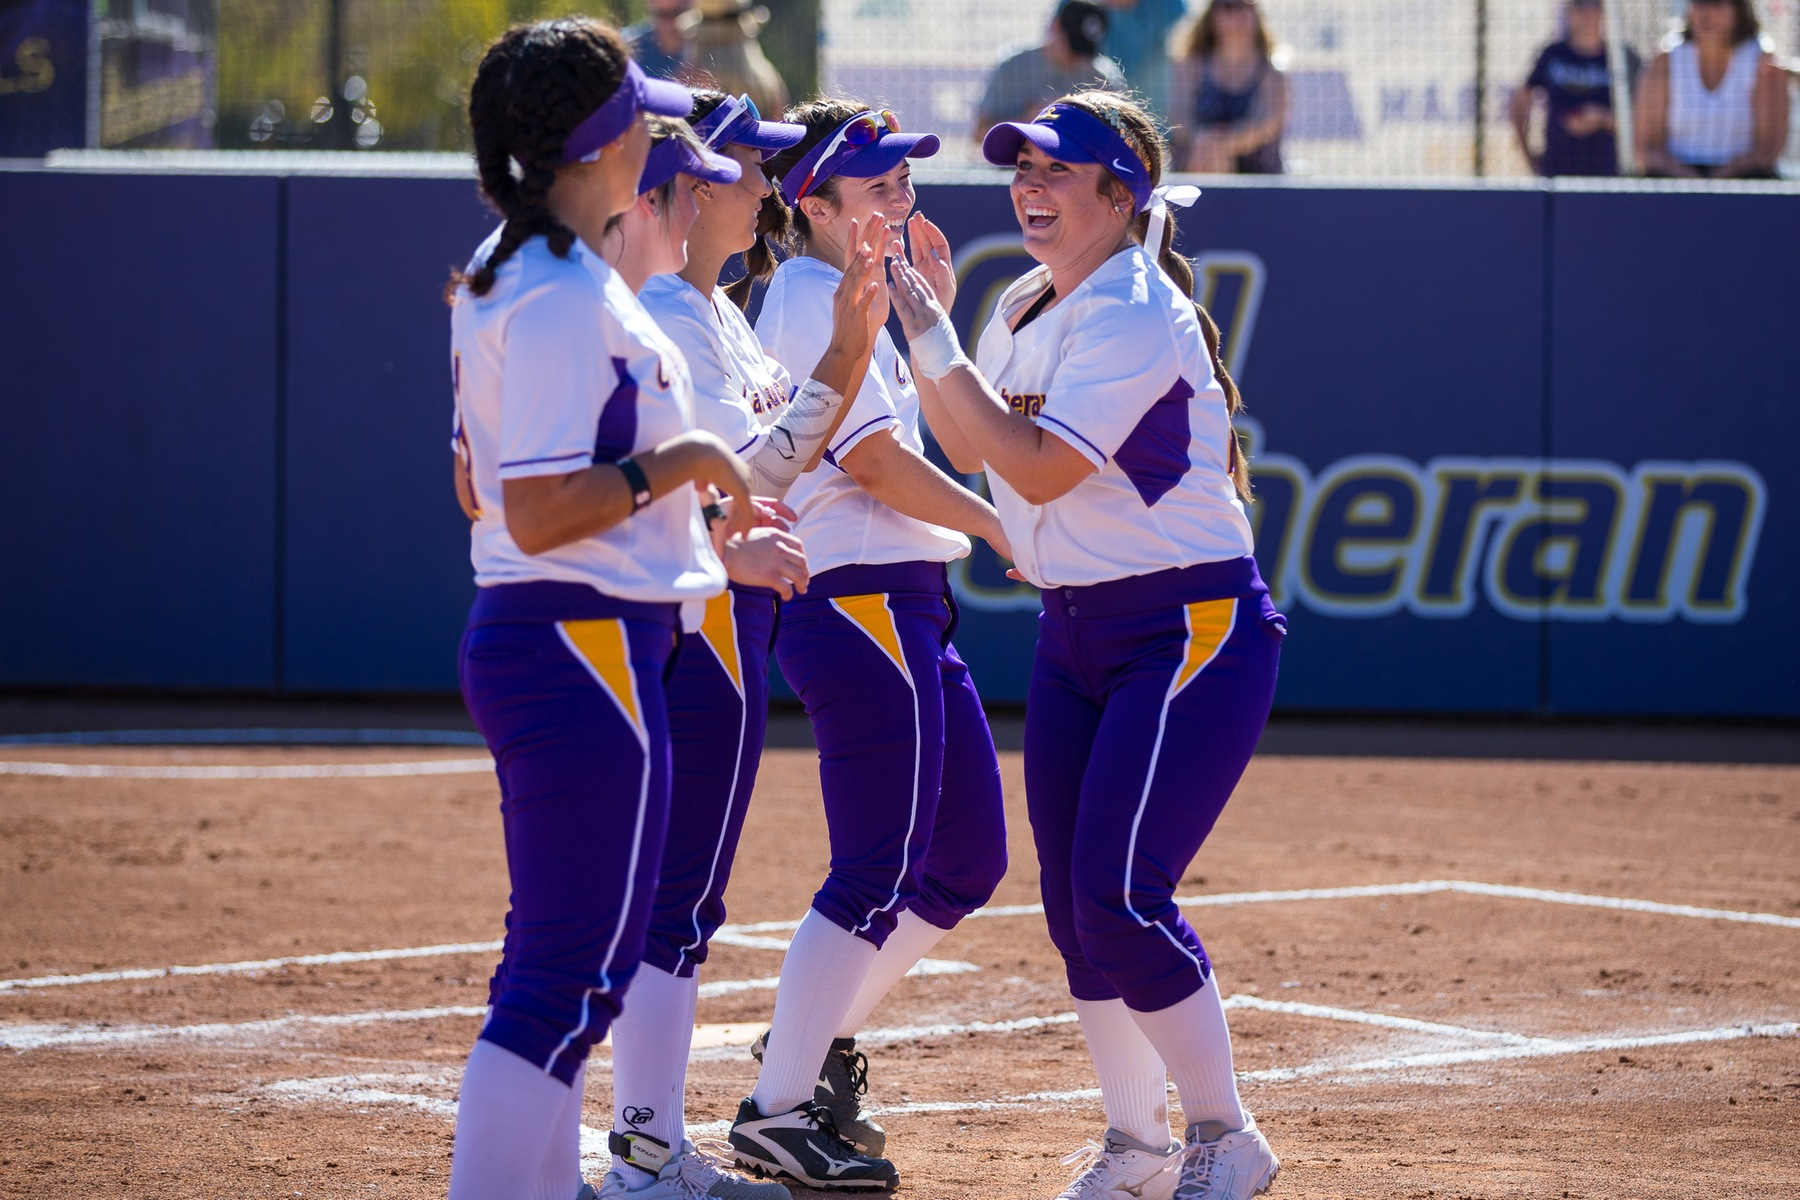 Regals Pitching Leads to Sweep of Athenas